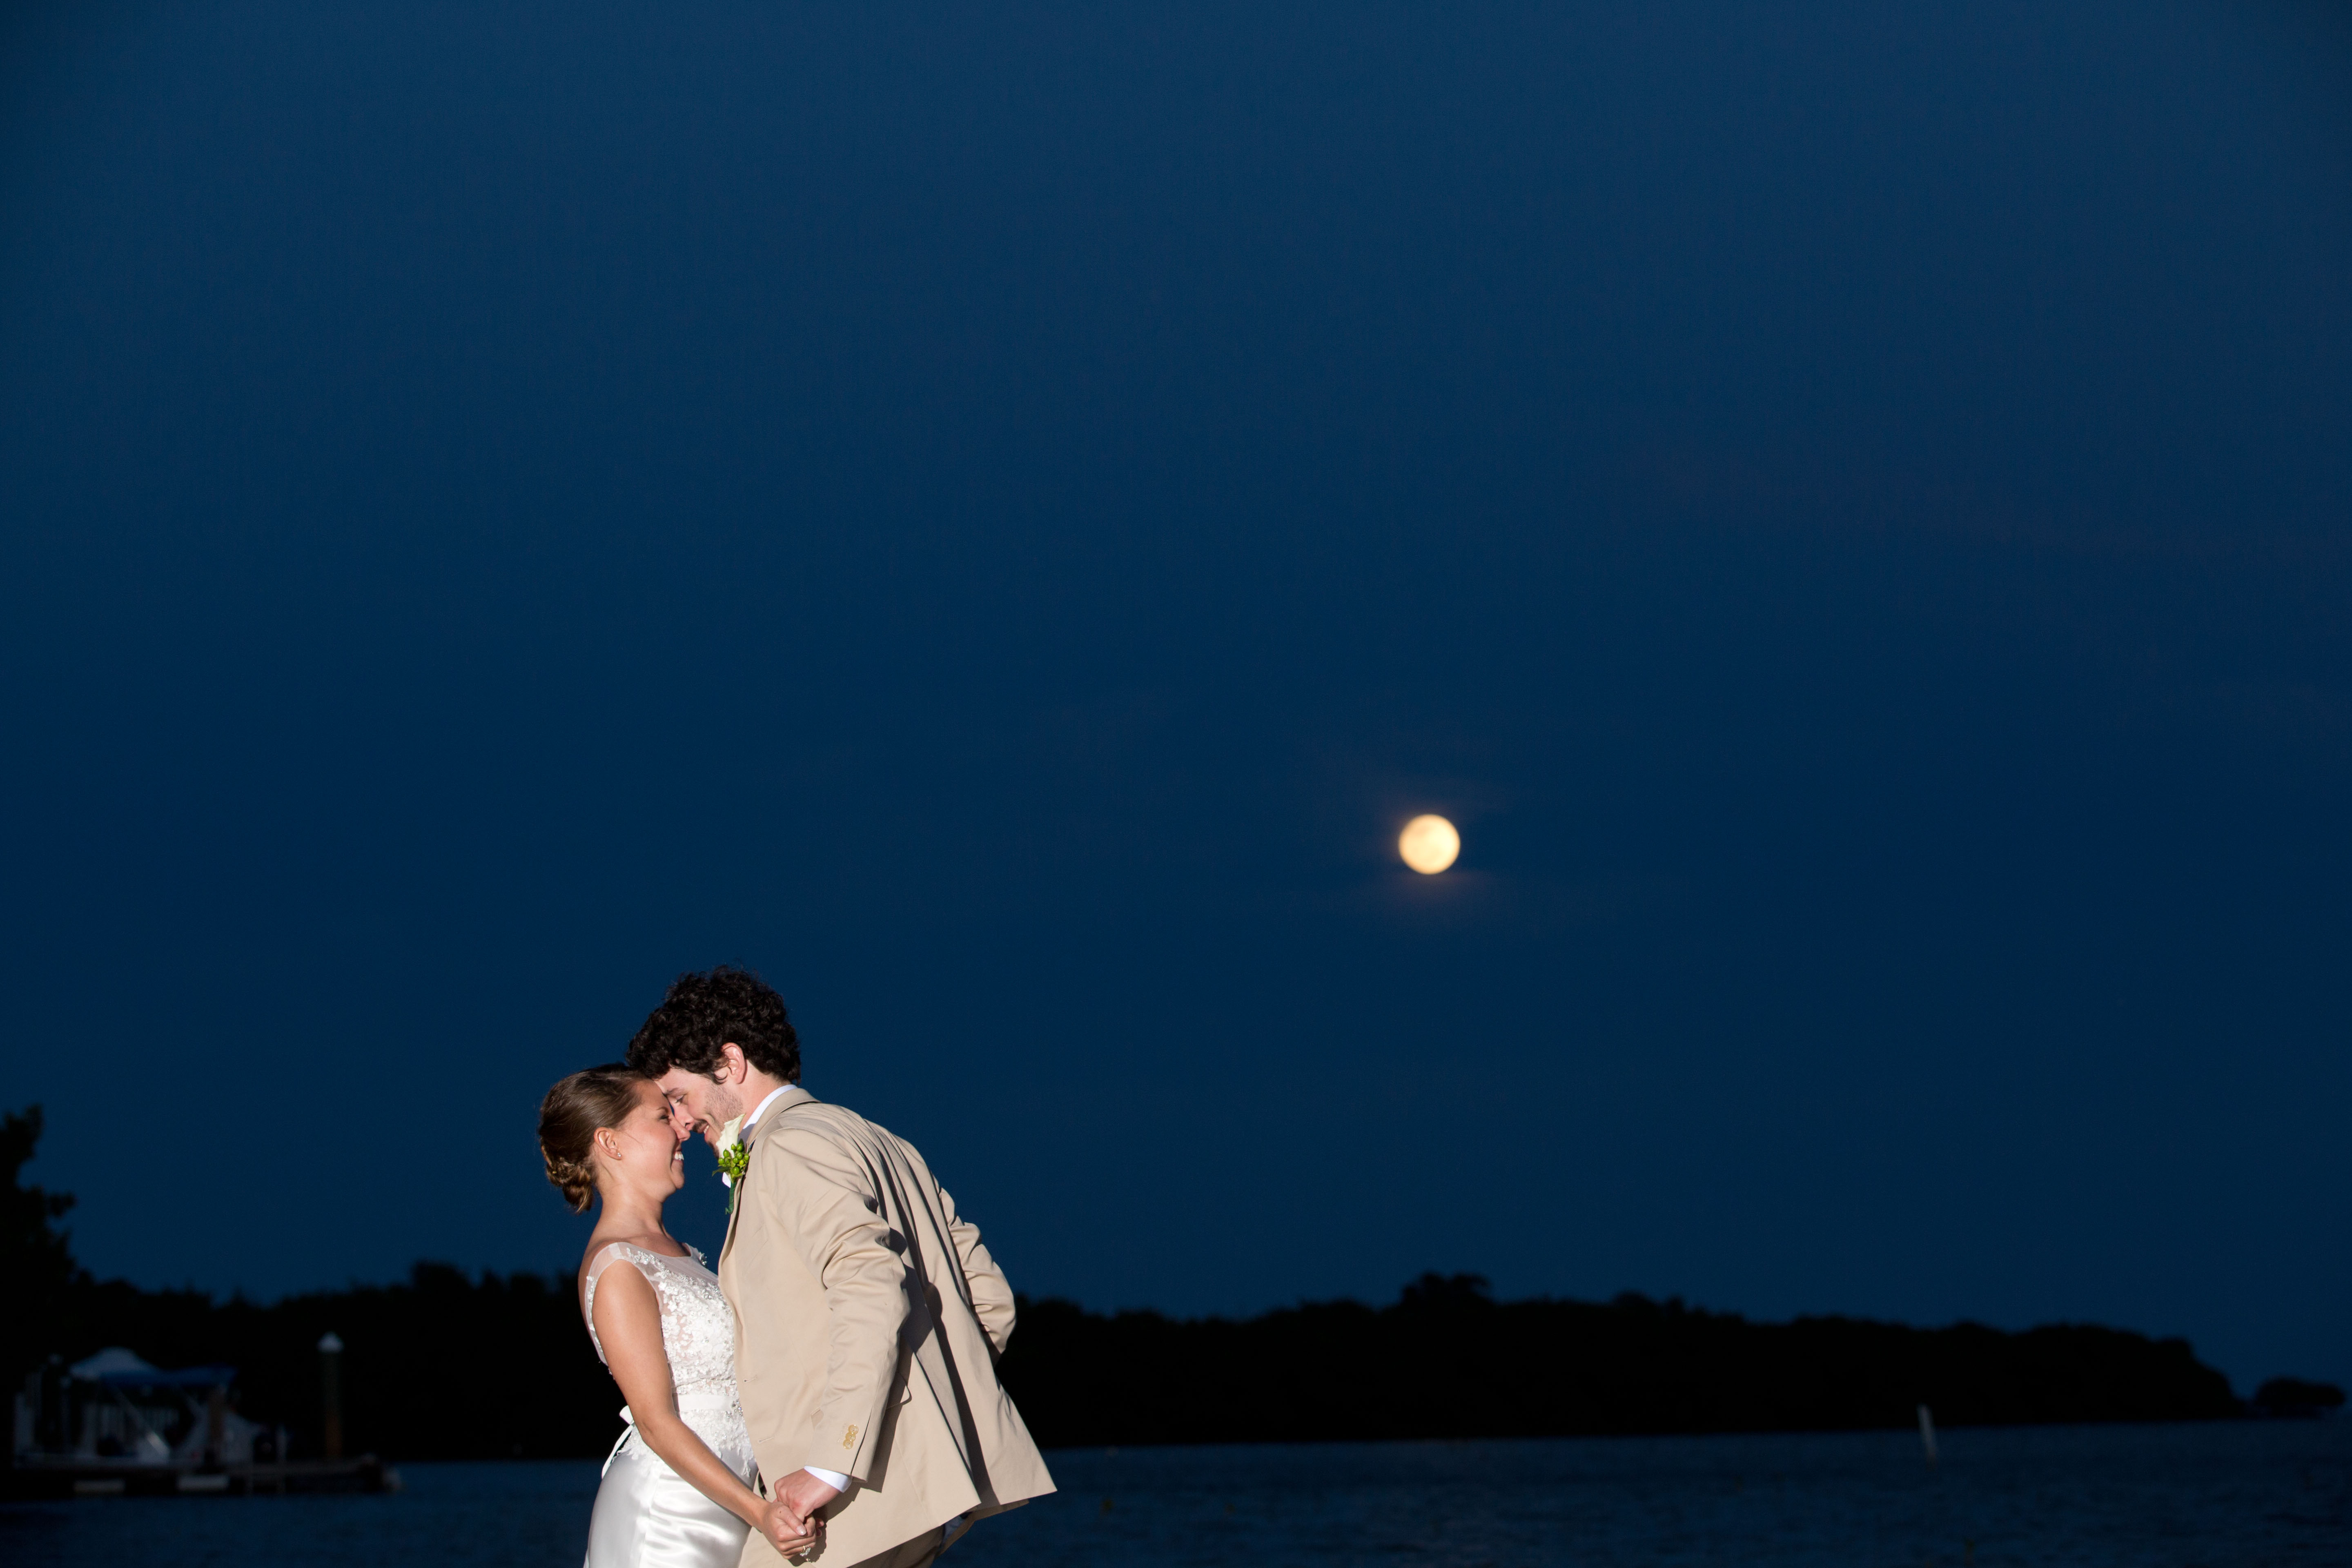 Bride and Groom under the moon